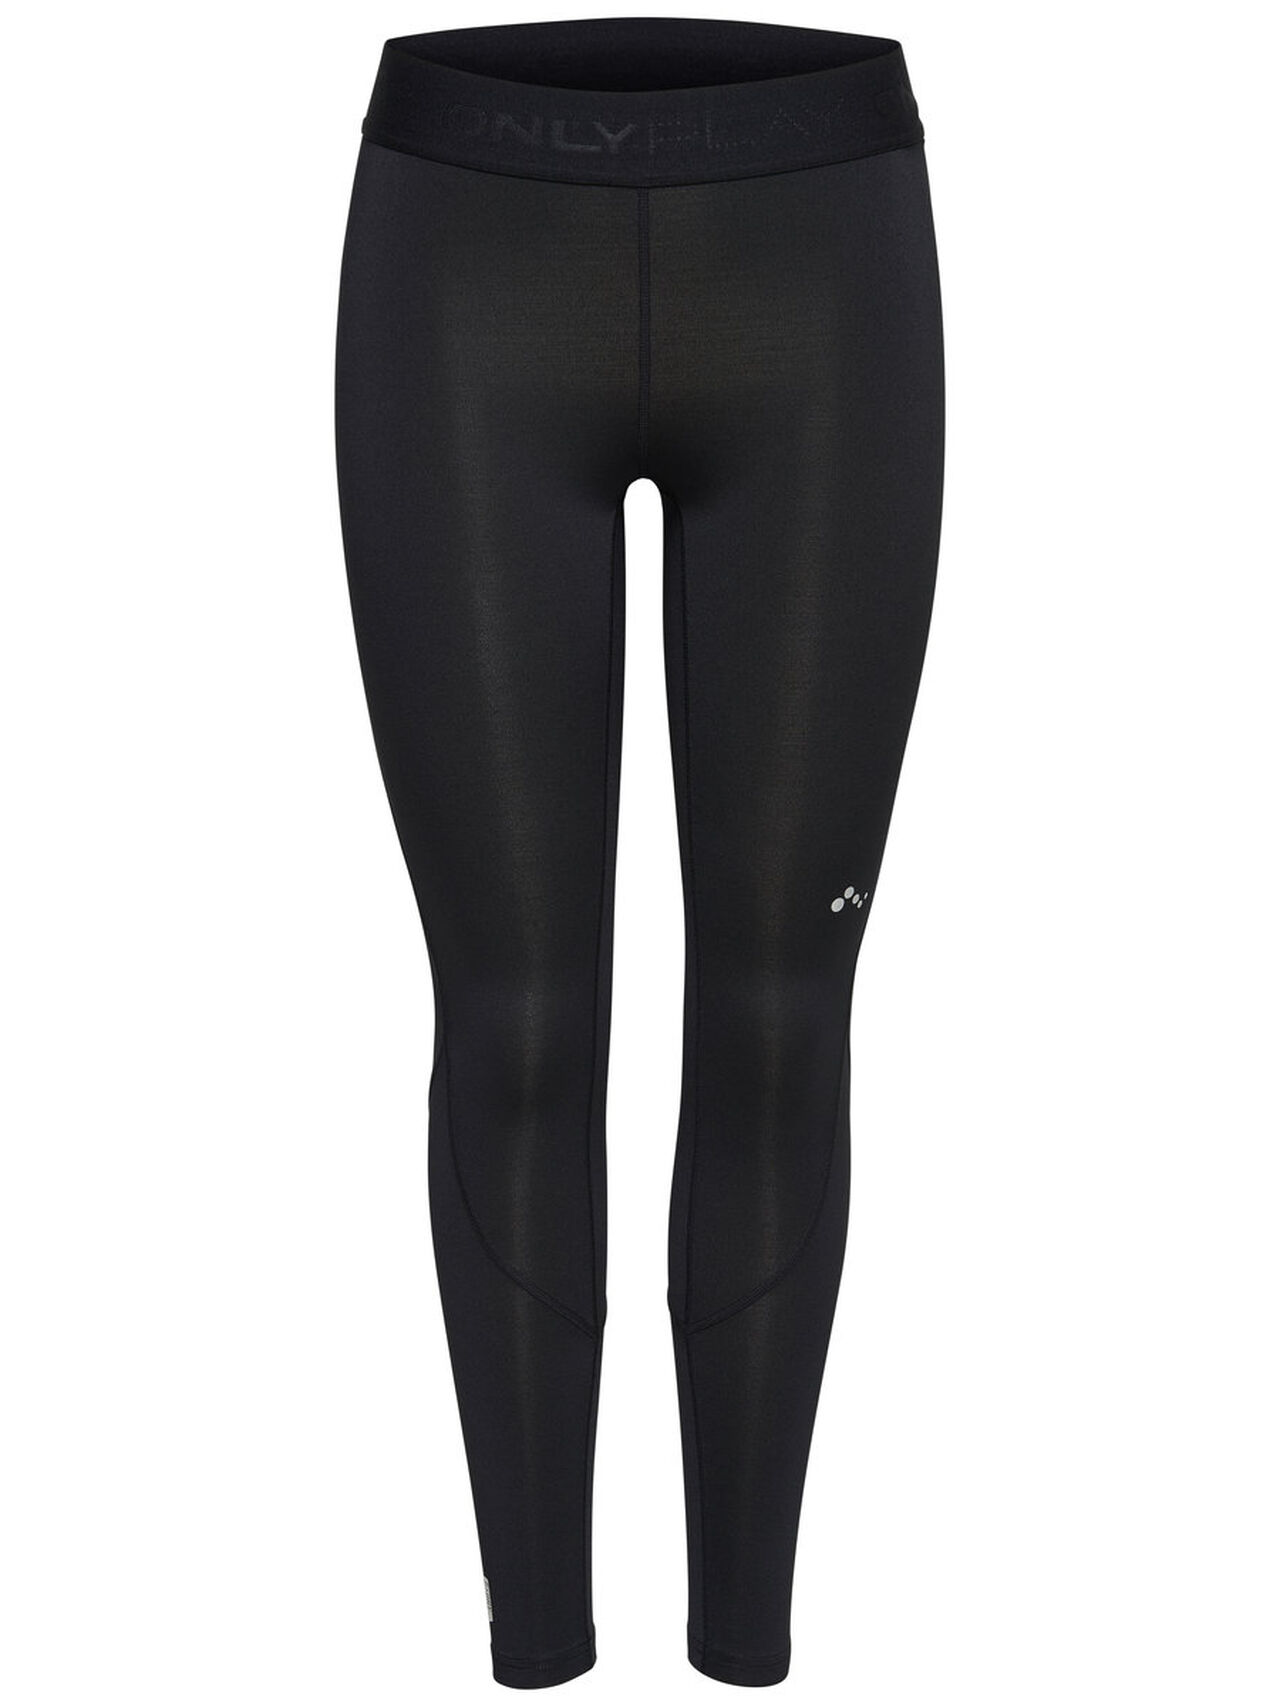 ONLY Solid Training Tights Women Black